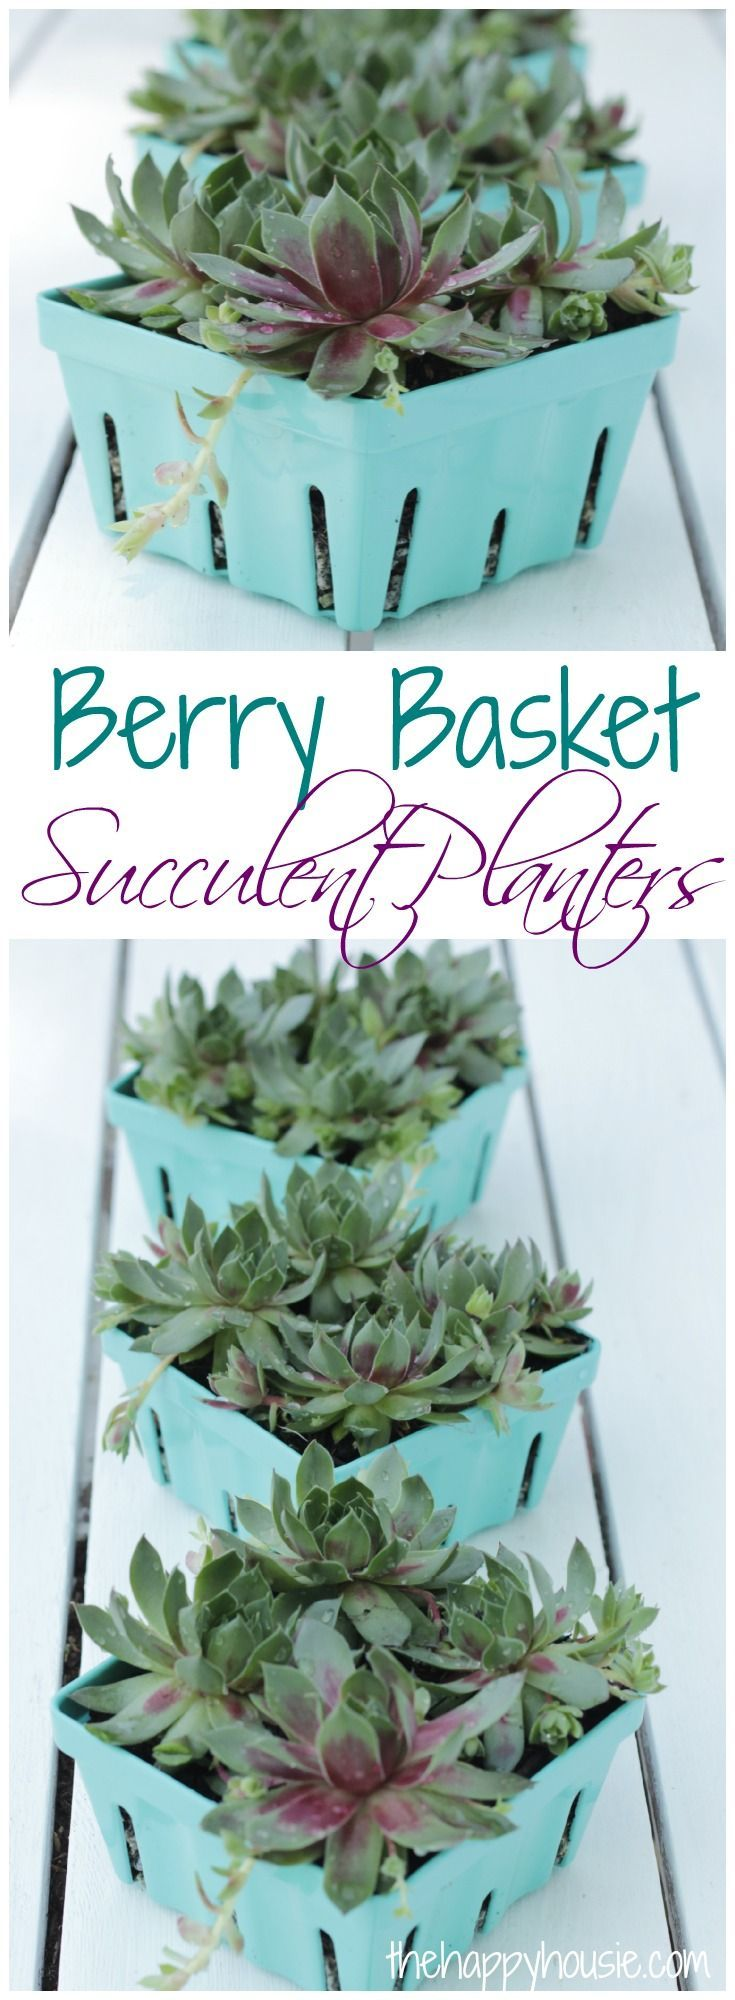 I always refrain from buying those cute ceramic berry baskets and egg crates at Michaels because I can't find a use for them... I won't have to refrain anymore!!